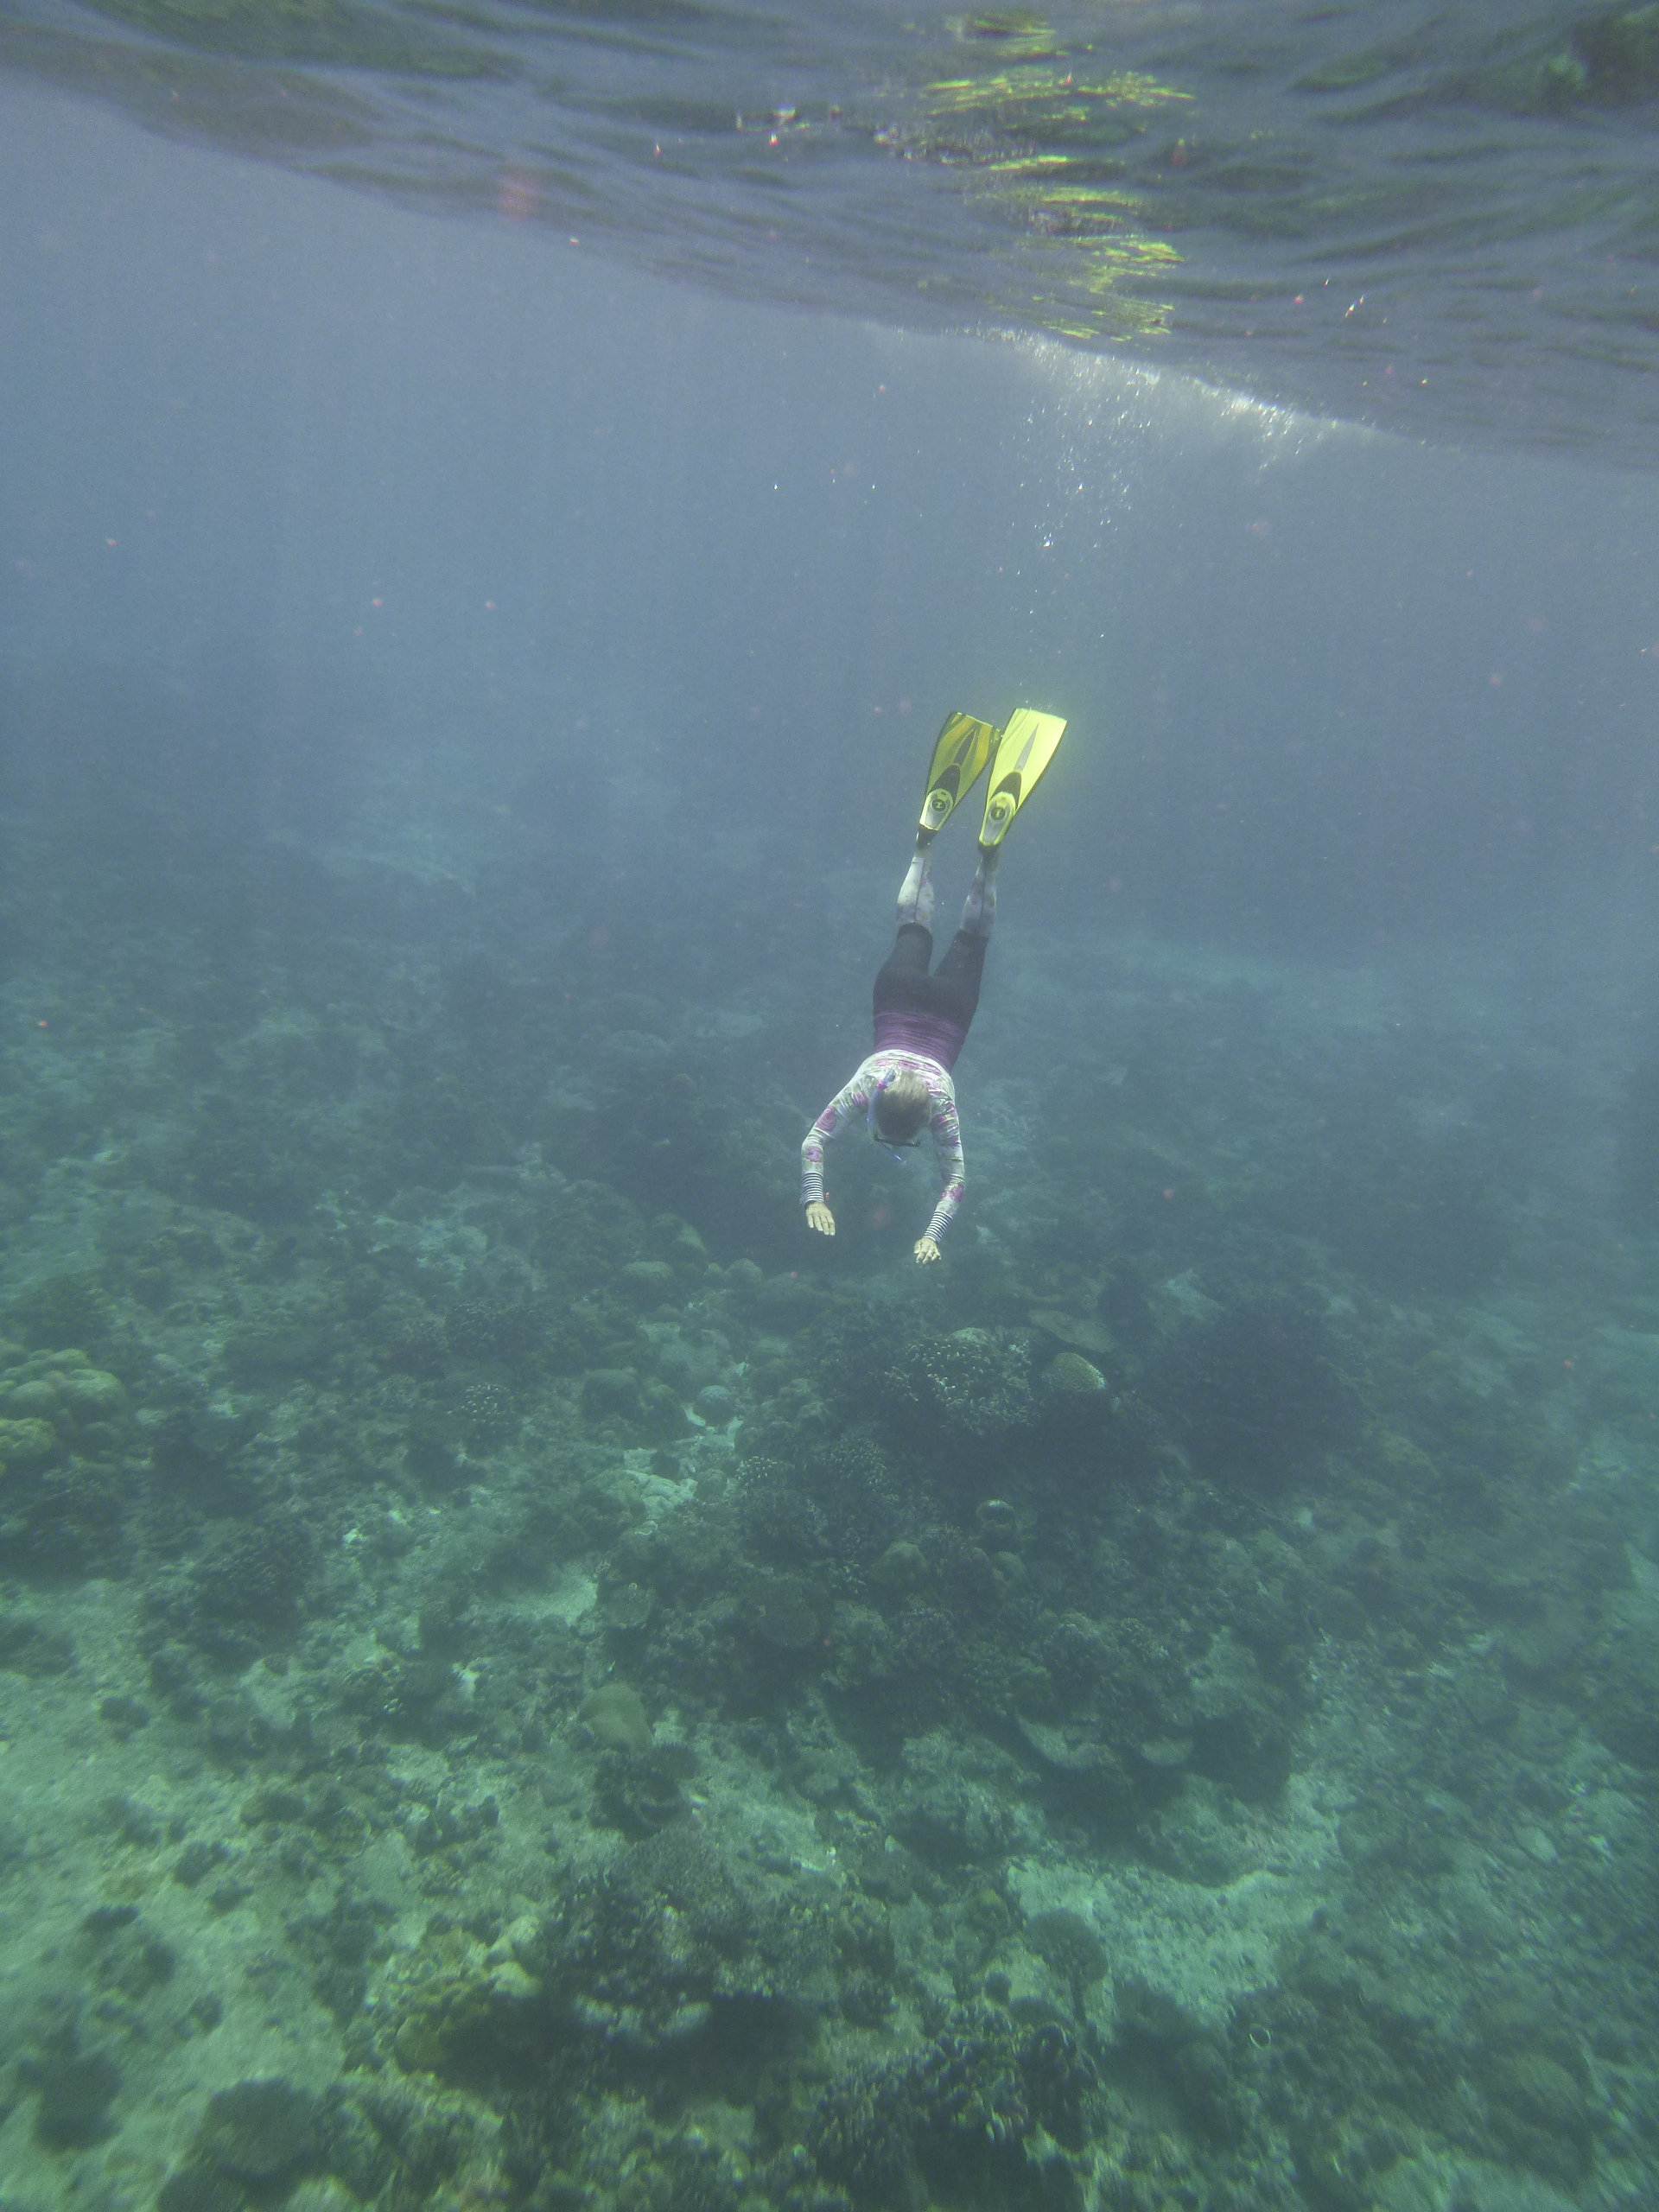 Snorkelling- cocos island, Christmas Island, perentian islands, tioman island, espiritos santos island, Tasmania island and Dove Lake, and now the Mediterranean Coast off as many countries as I can manage.